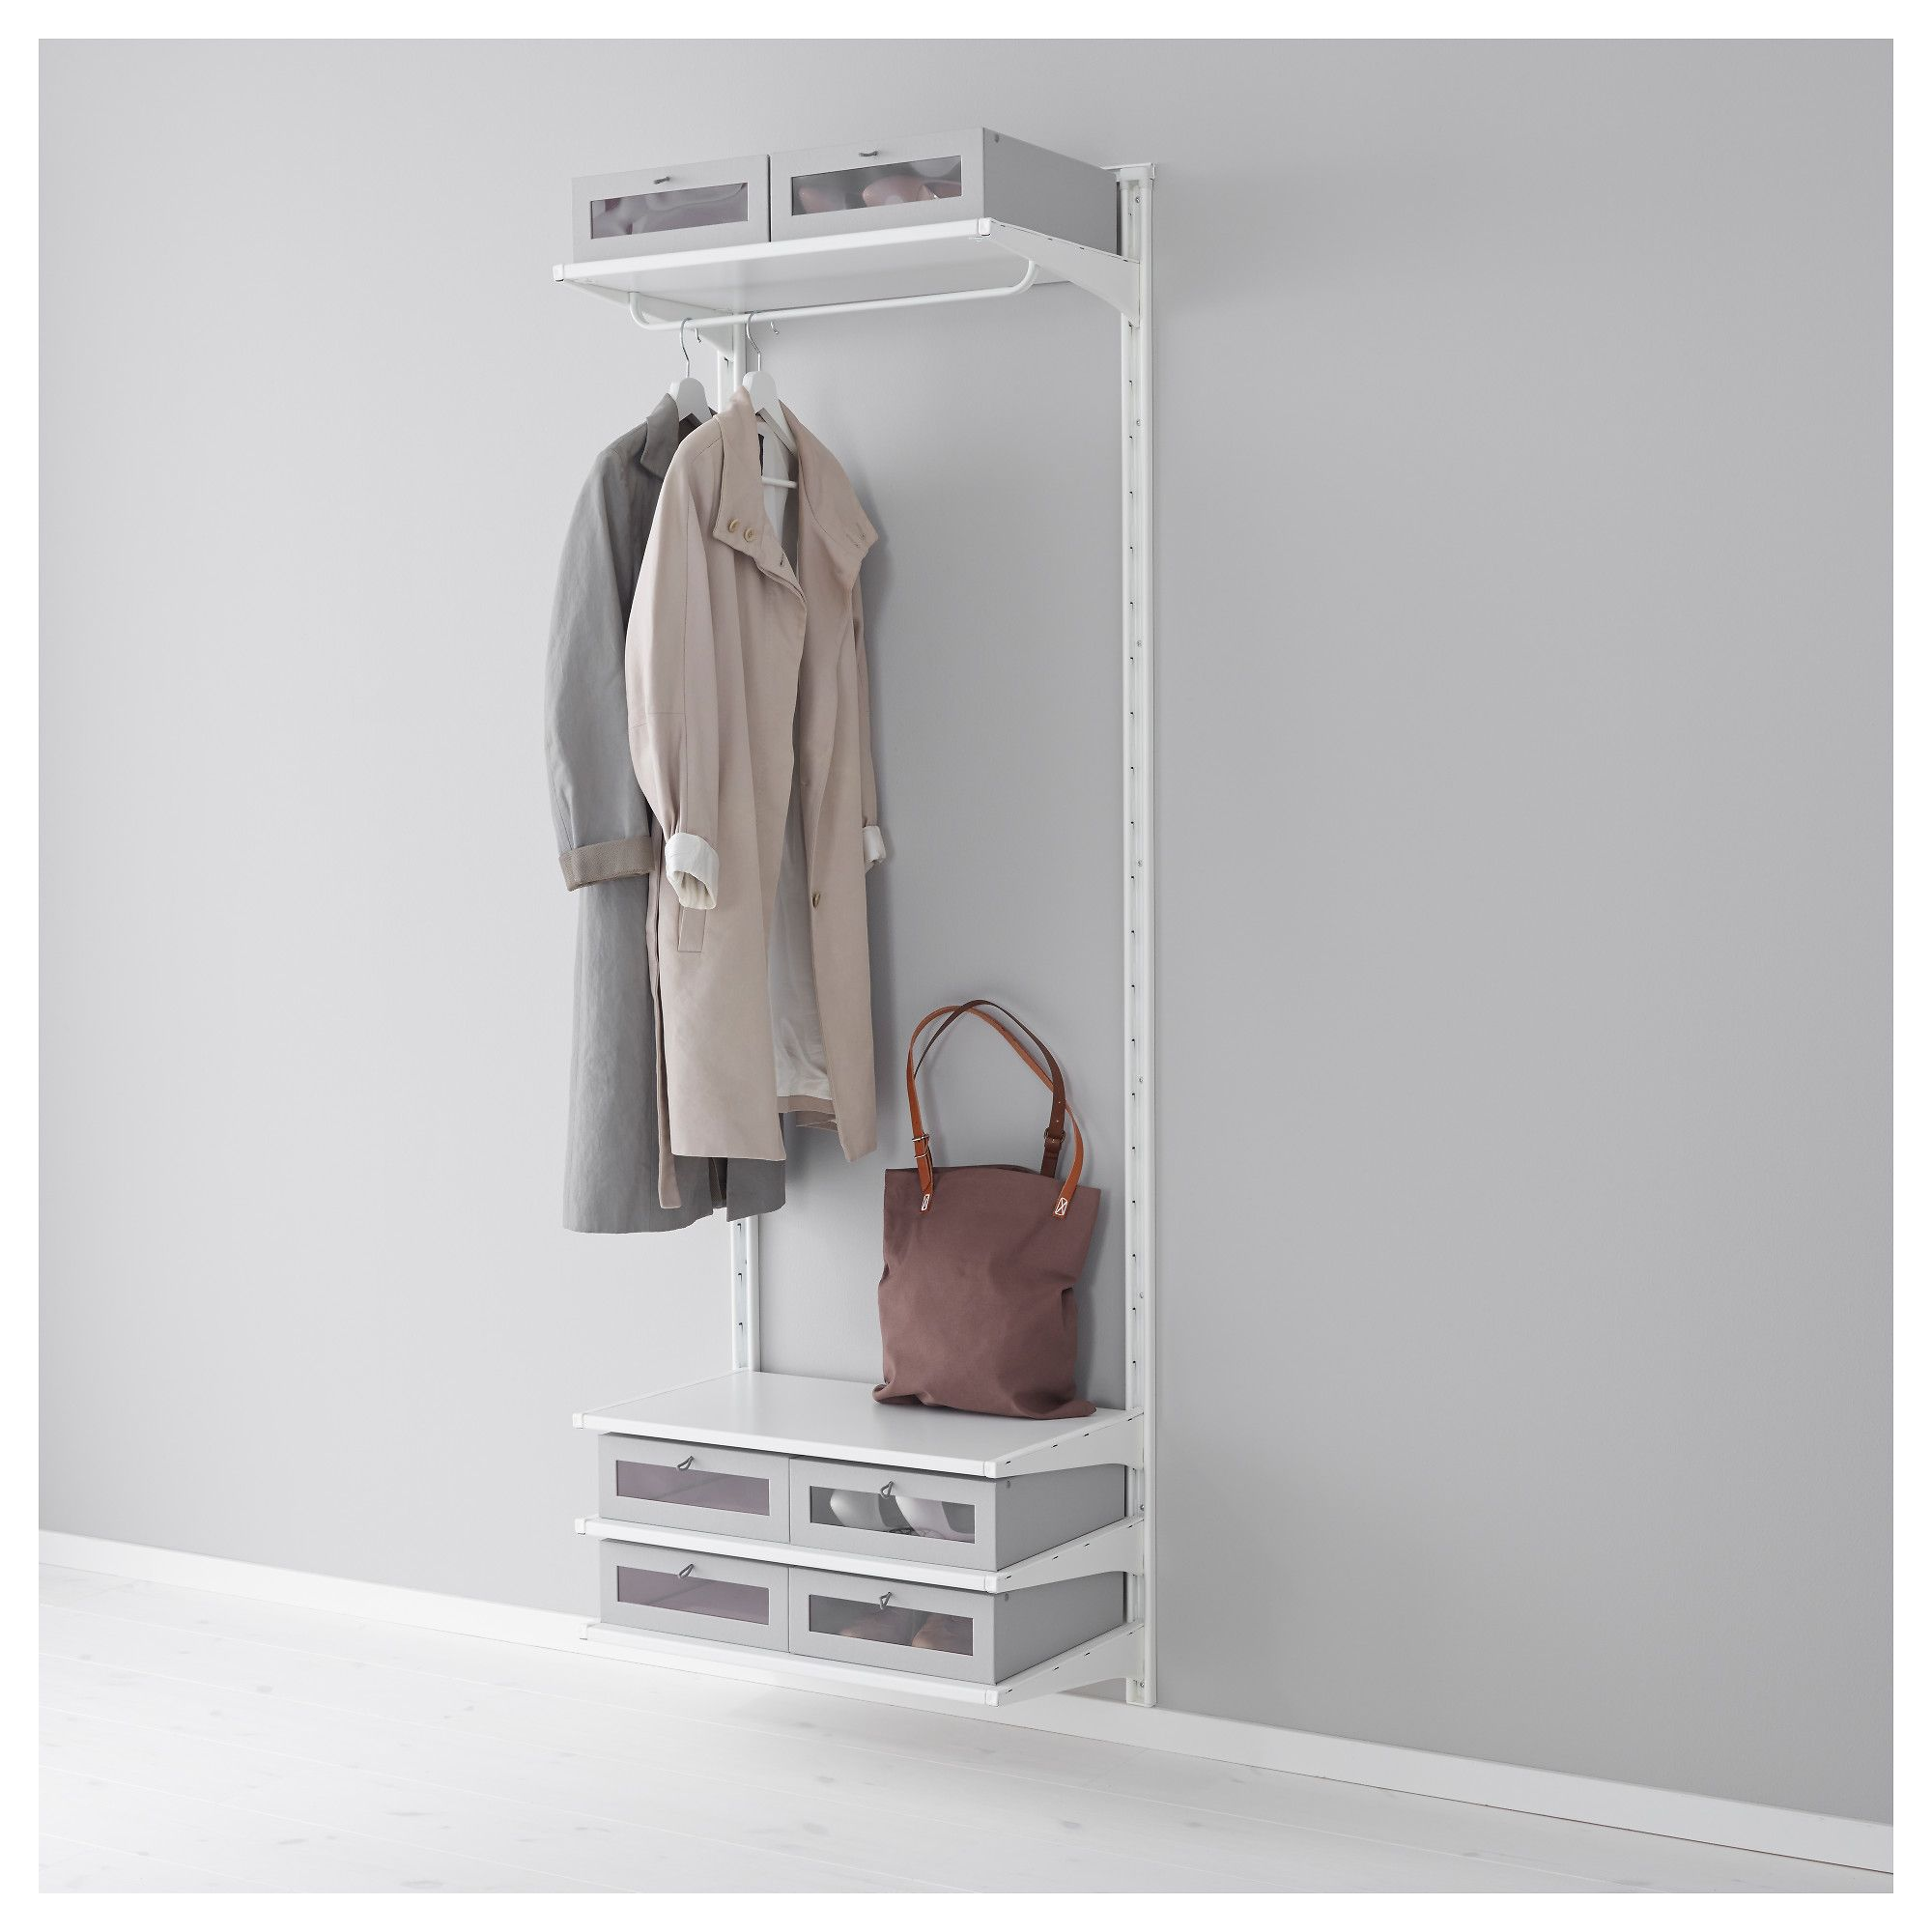 Algot Wall Upright Shelves Rod White 26x16 1 8x77 1 2 With